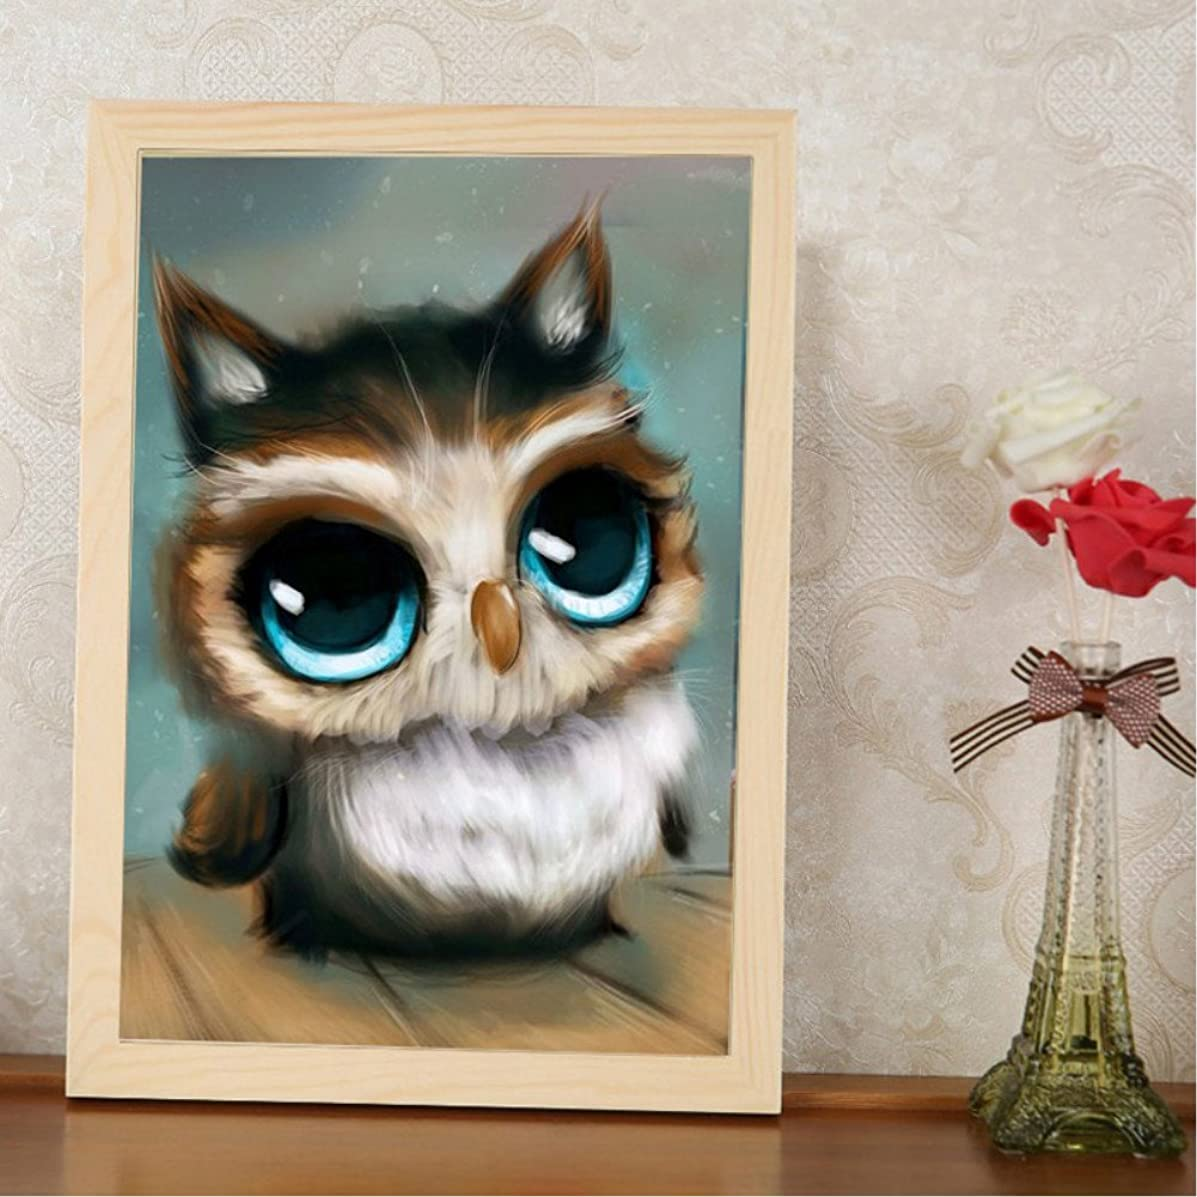 Miss 2 DIY 5D Full Drill Diamond Sticker Cross Stitch Painting Kits for Adult and Children Arts Crafts Home Decor Owl Bird 30 x 20cm (11.8